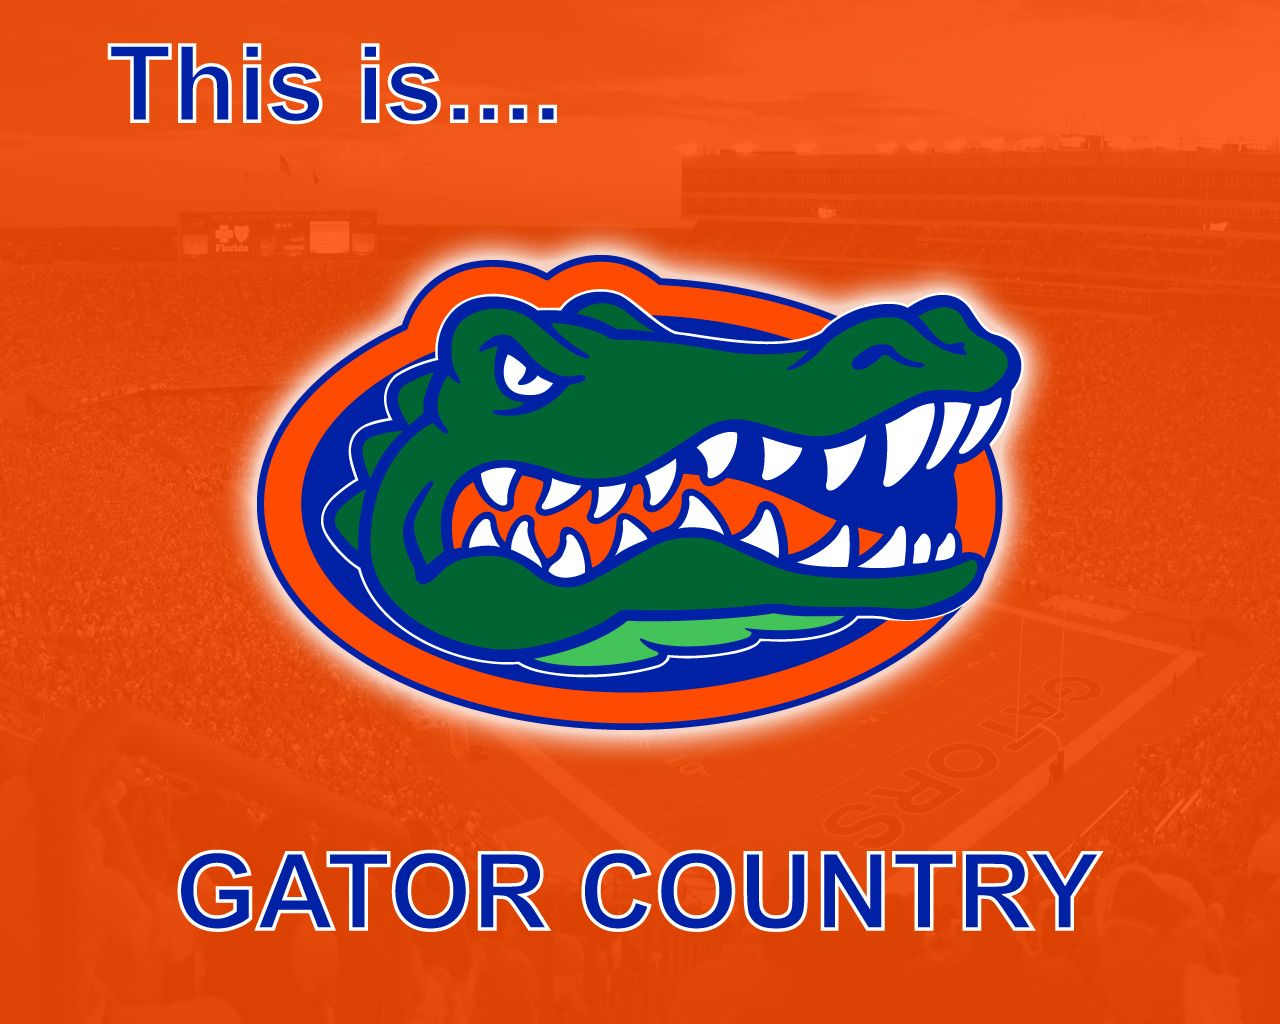 Florida Gators Logo, Fathead wide x high Made of vinyl. Our peel-and-stick decals are easy to apply, reposition and remove. Self-adhesive backing removes ...